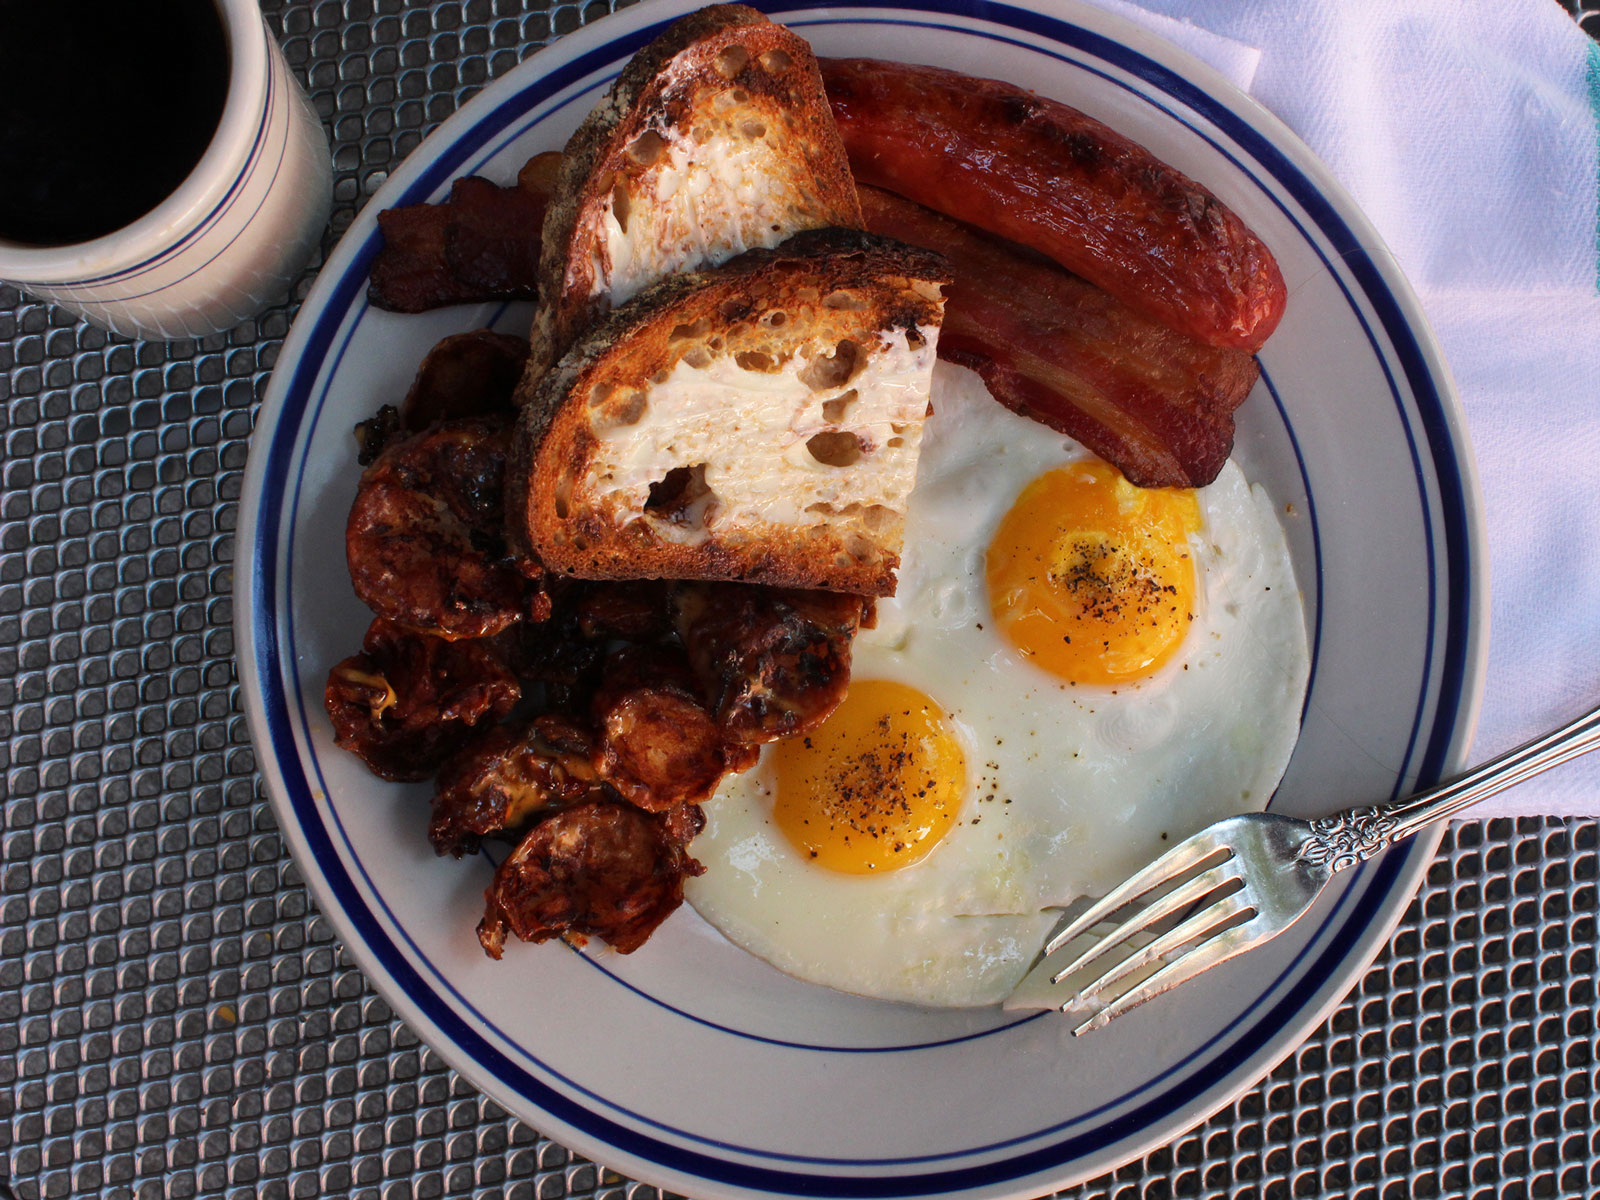 $12 Butcher breakfast at Publican Quality Meats